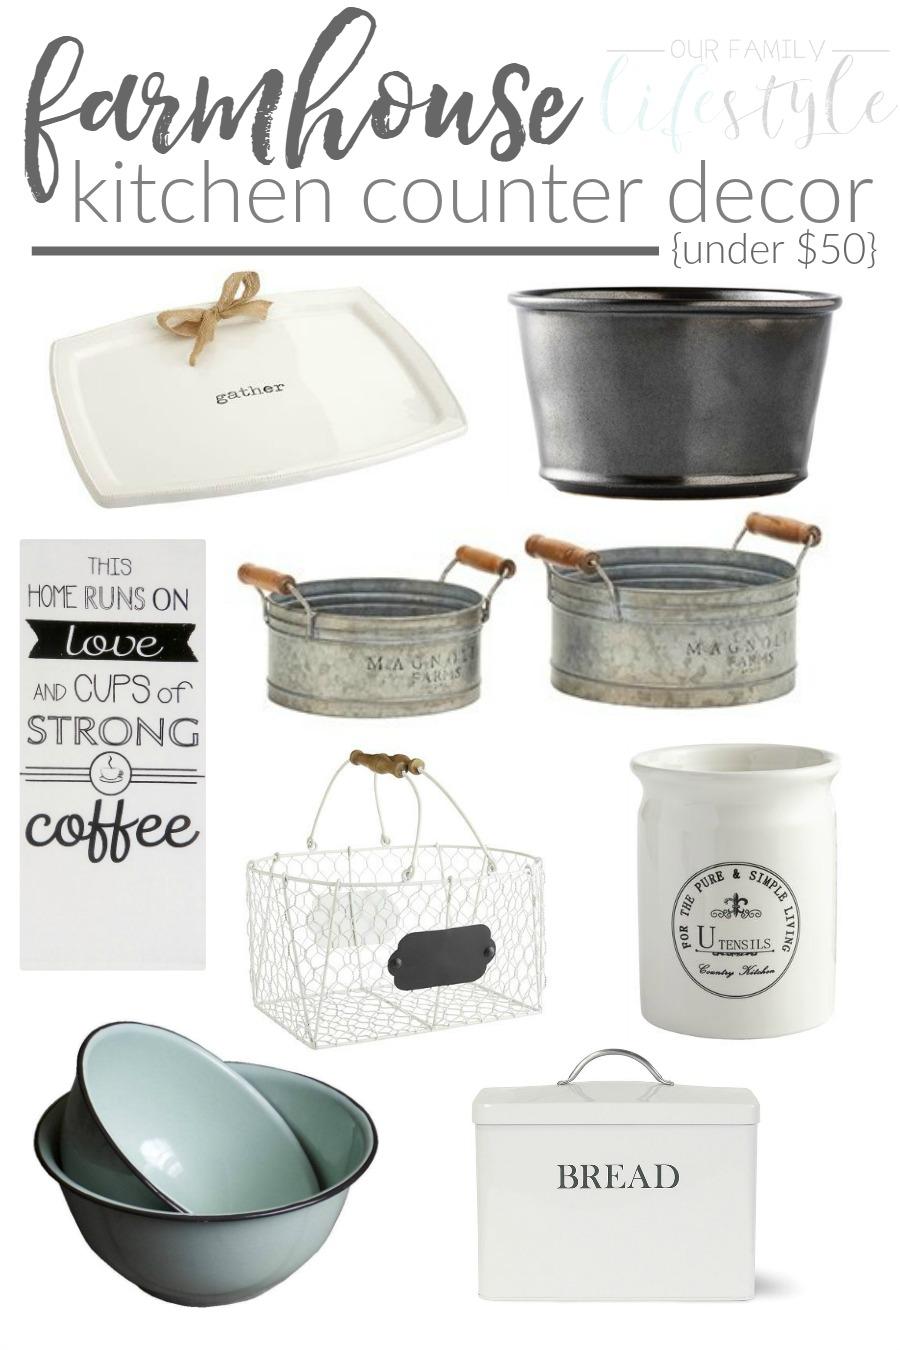 Farmhouse Kitchen Counter Decor Under $50